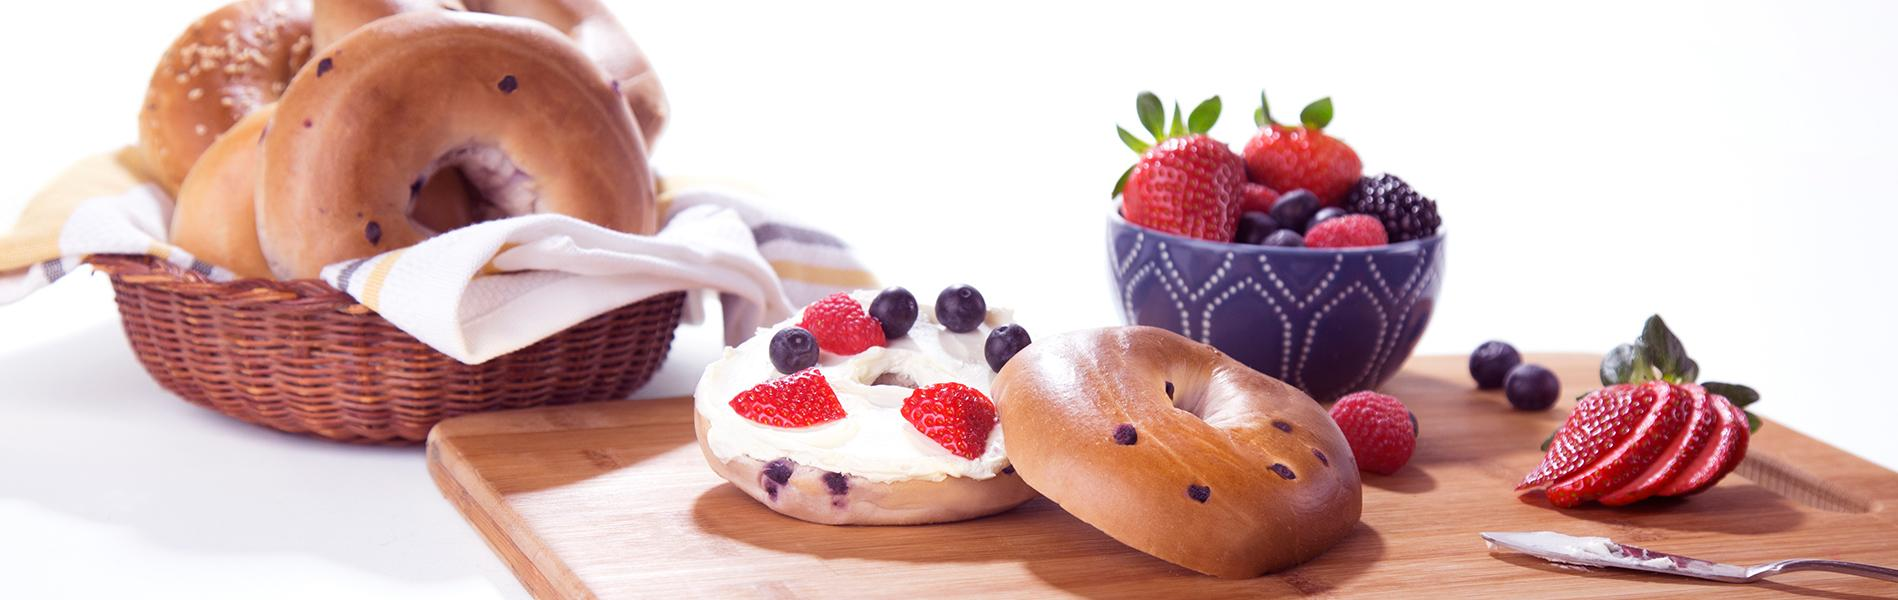 Fruit and cream cheese on Sara Lee Blueberry Bagels